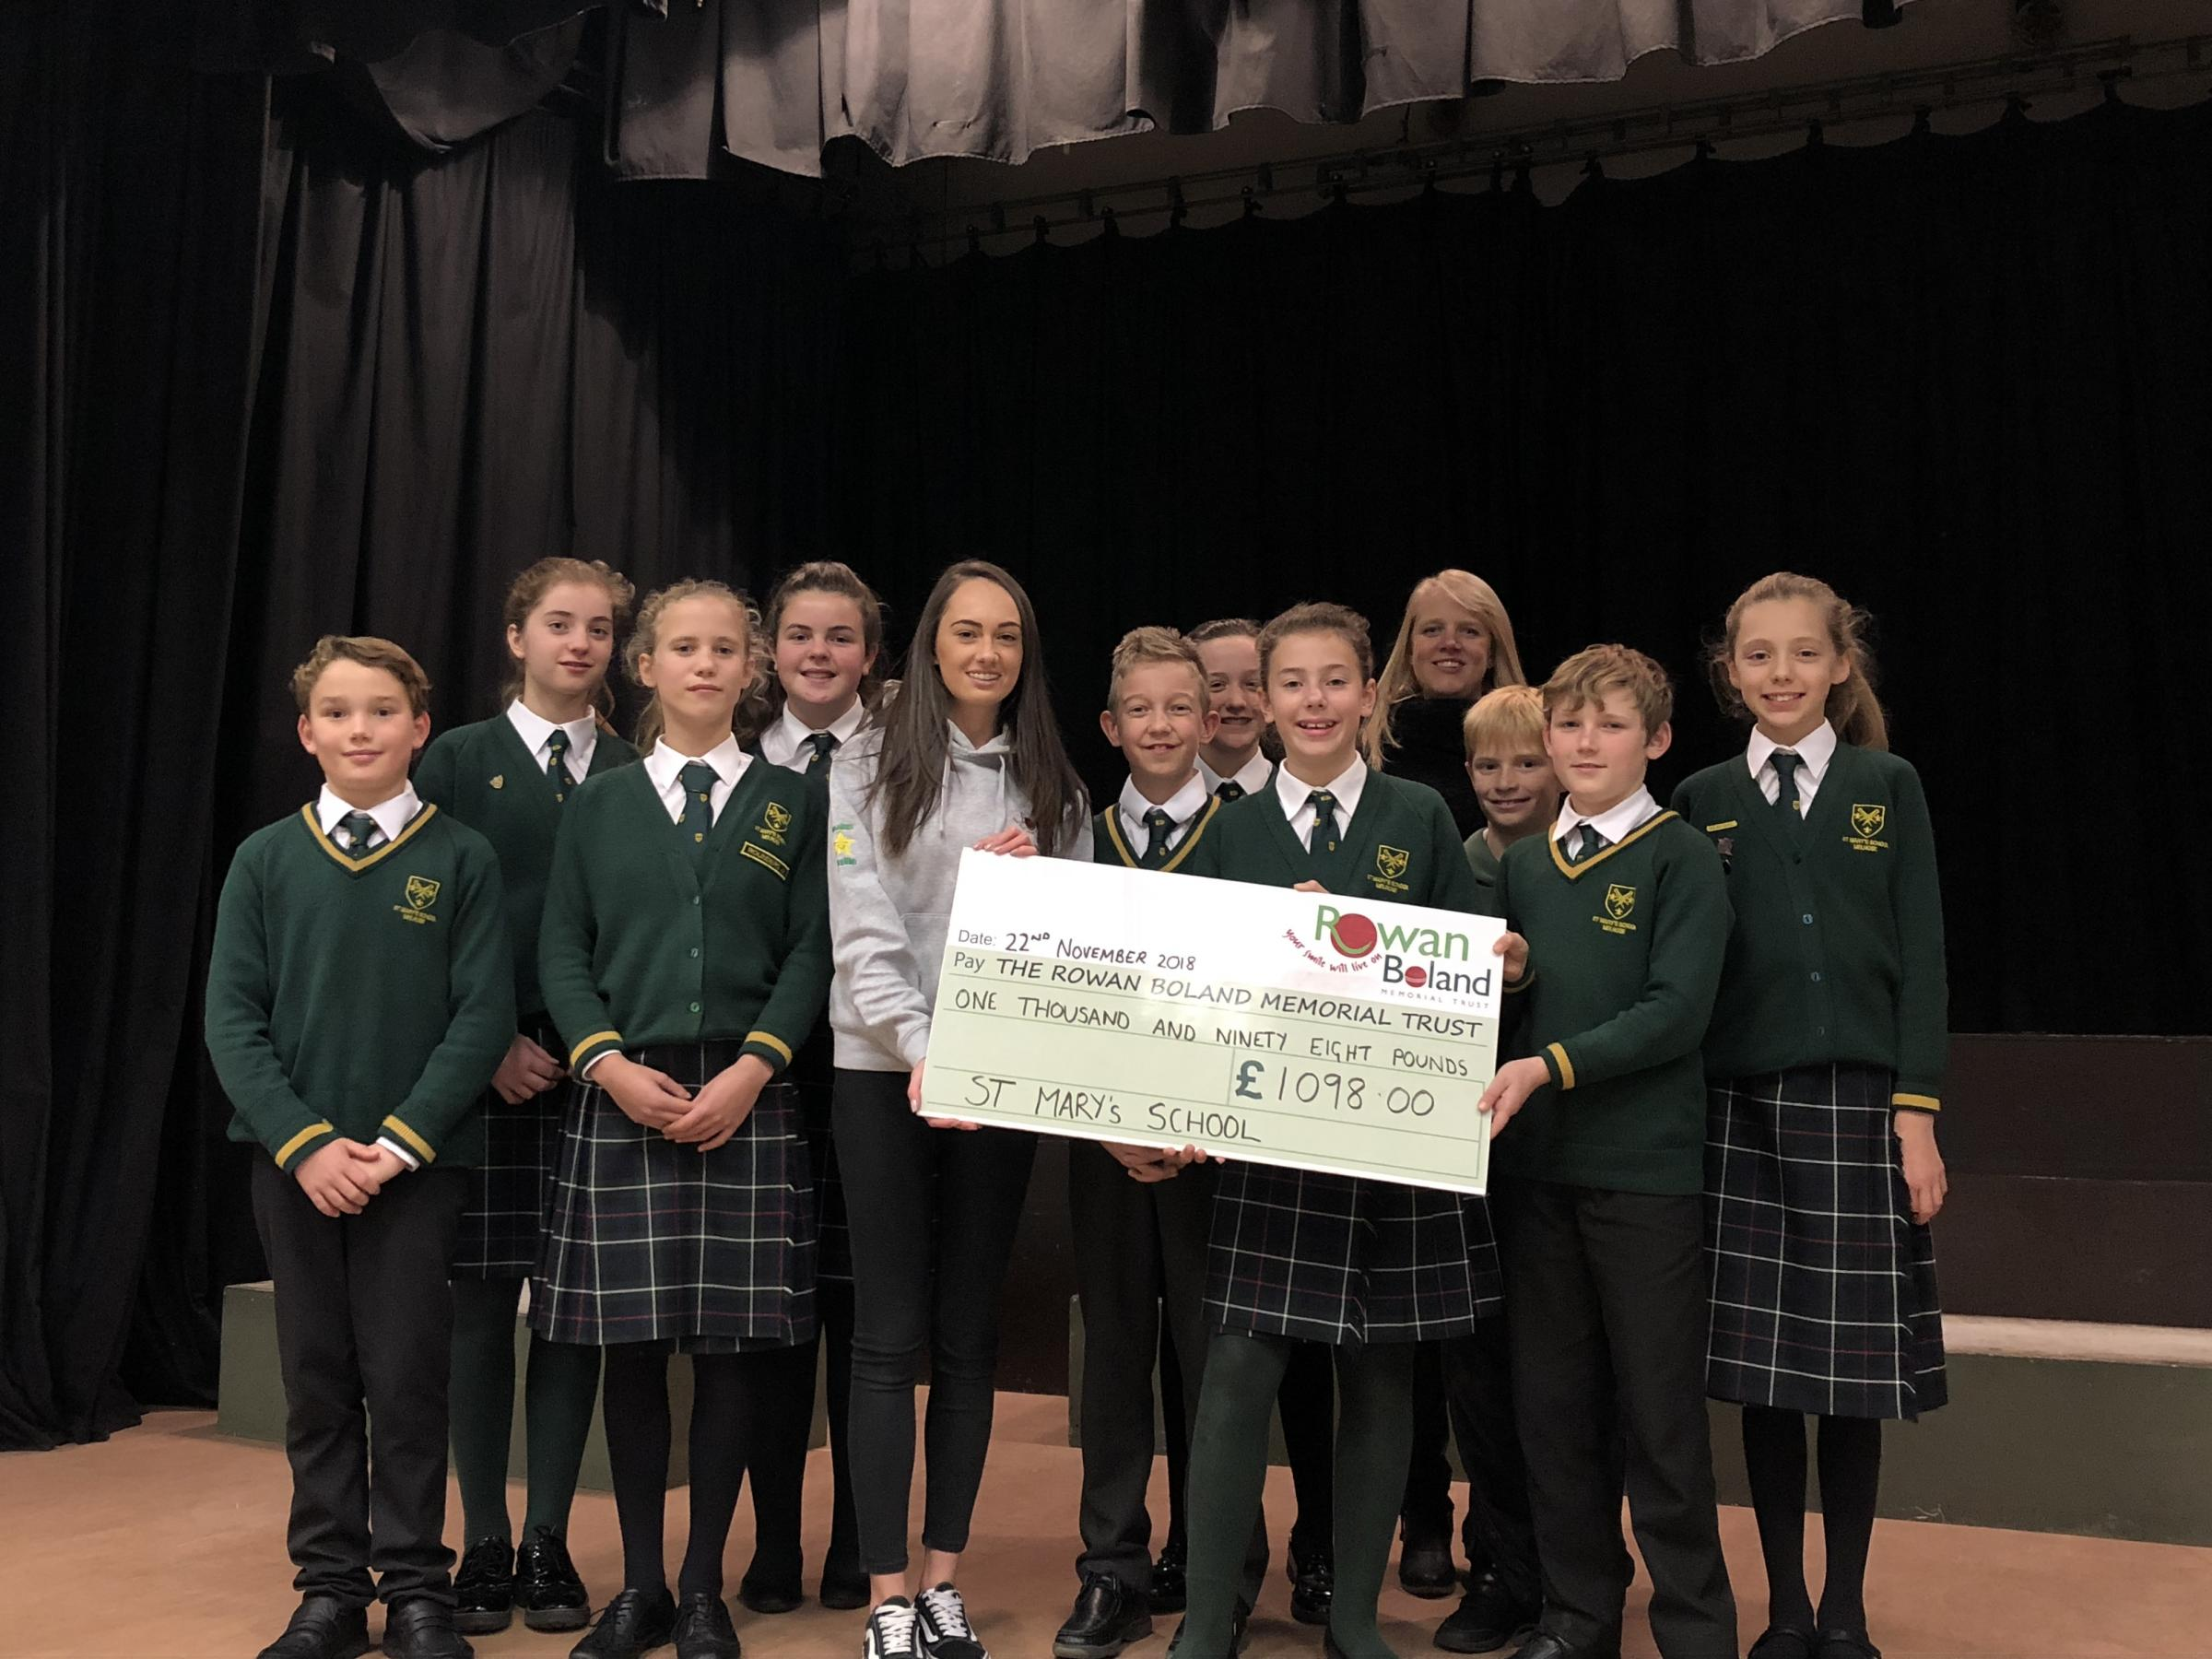 Kirstin Boland collects the cheque